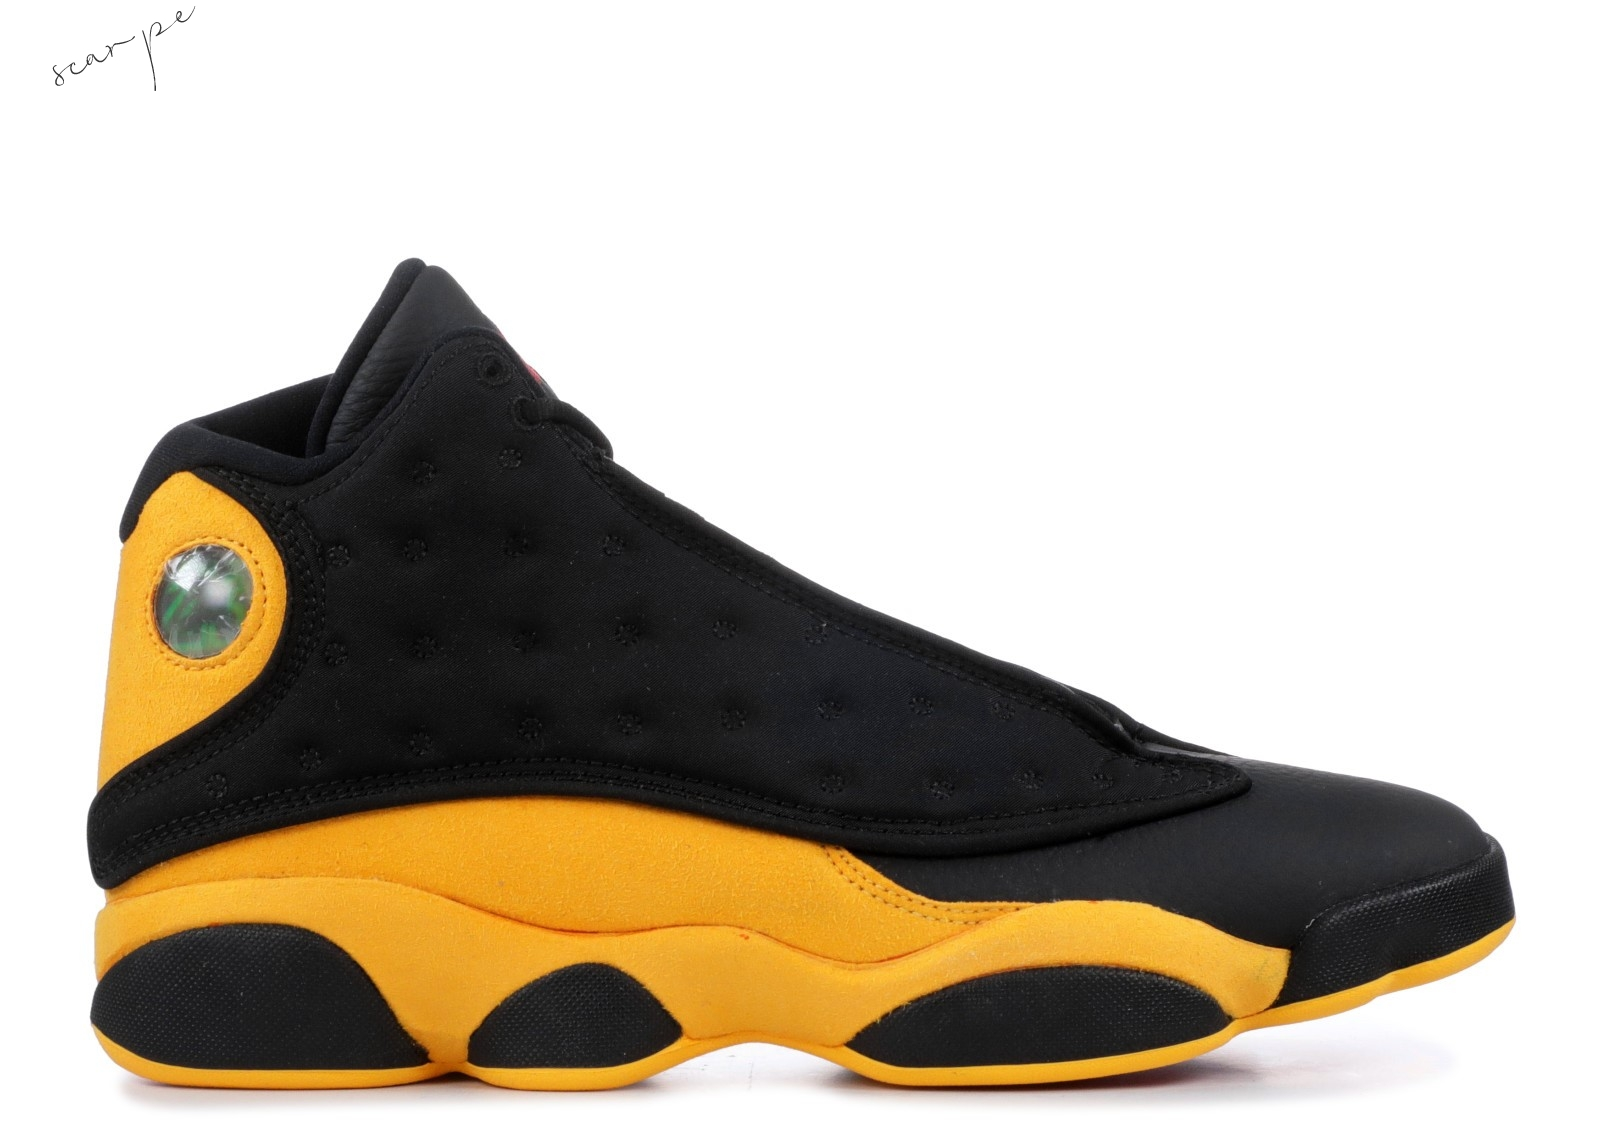 "Vendite Air Jordan 13 Retro ""Melo Class Of 2002 ""B Grade"""" Nero Giallo (414571-035) Scarpe Online"